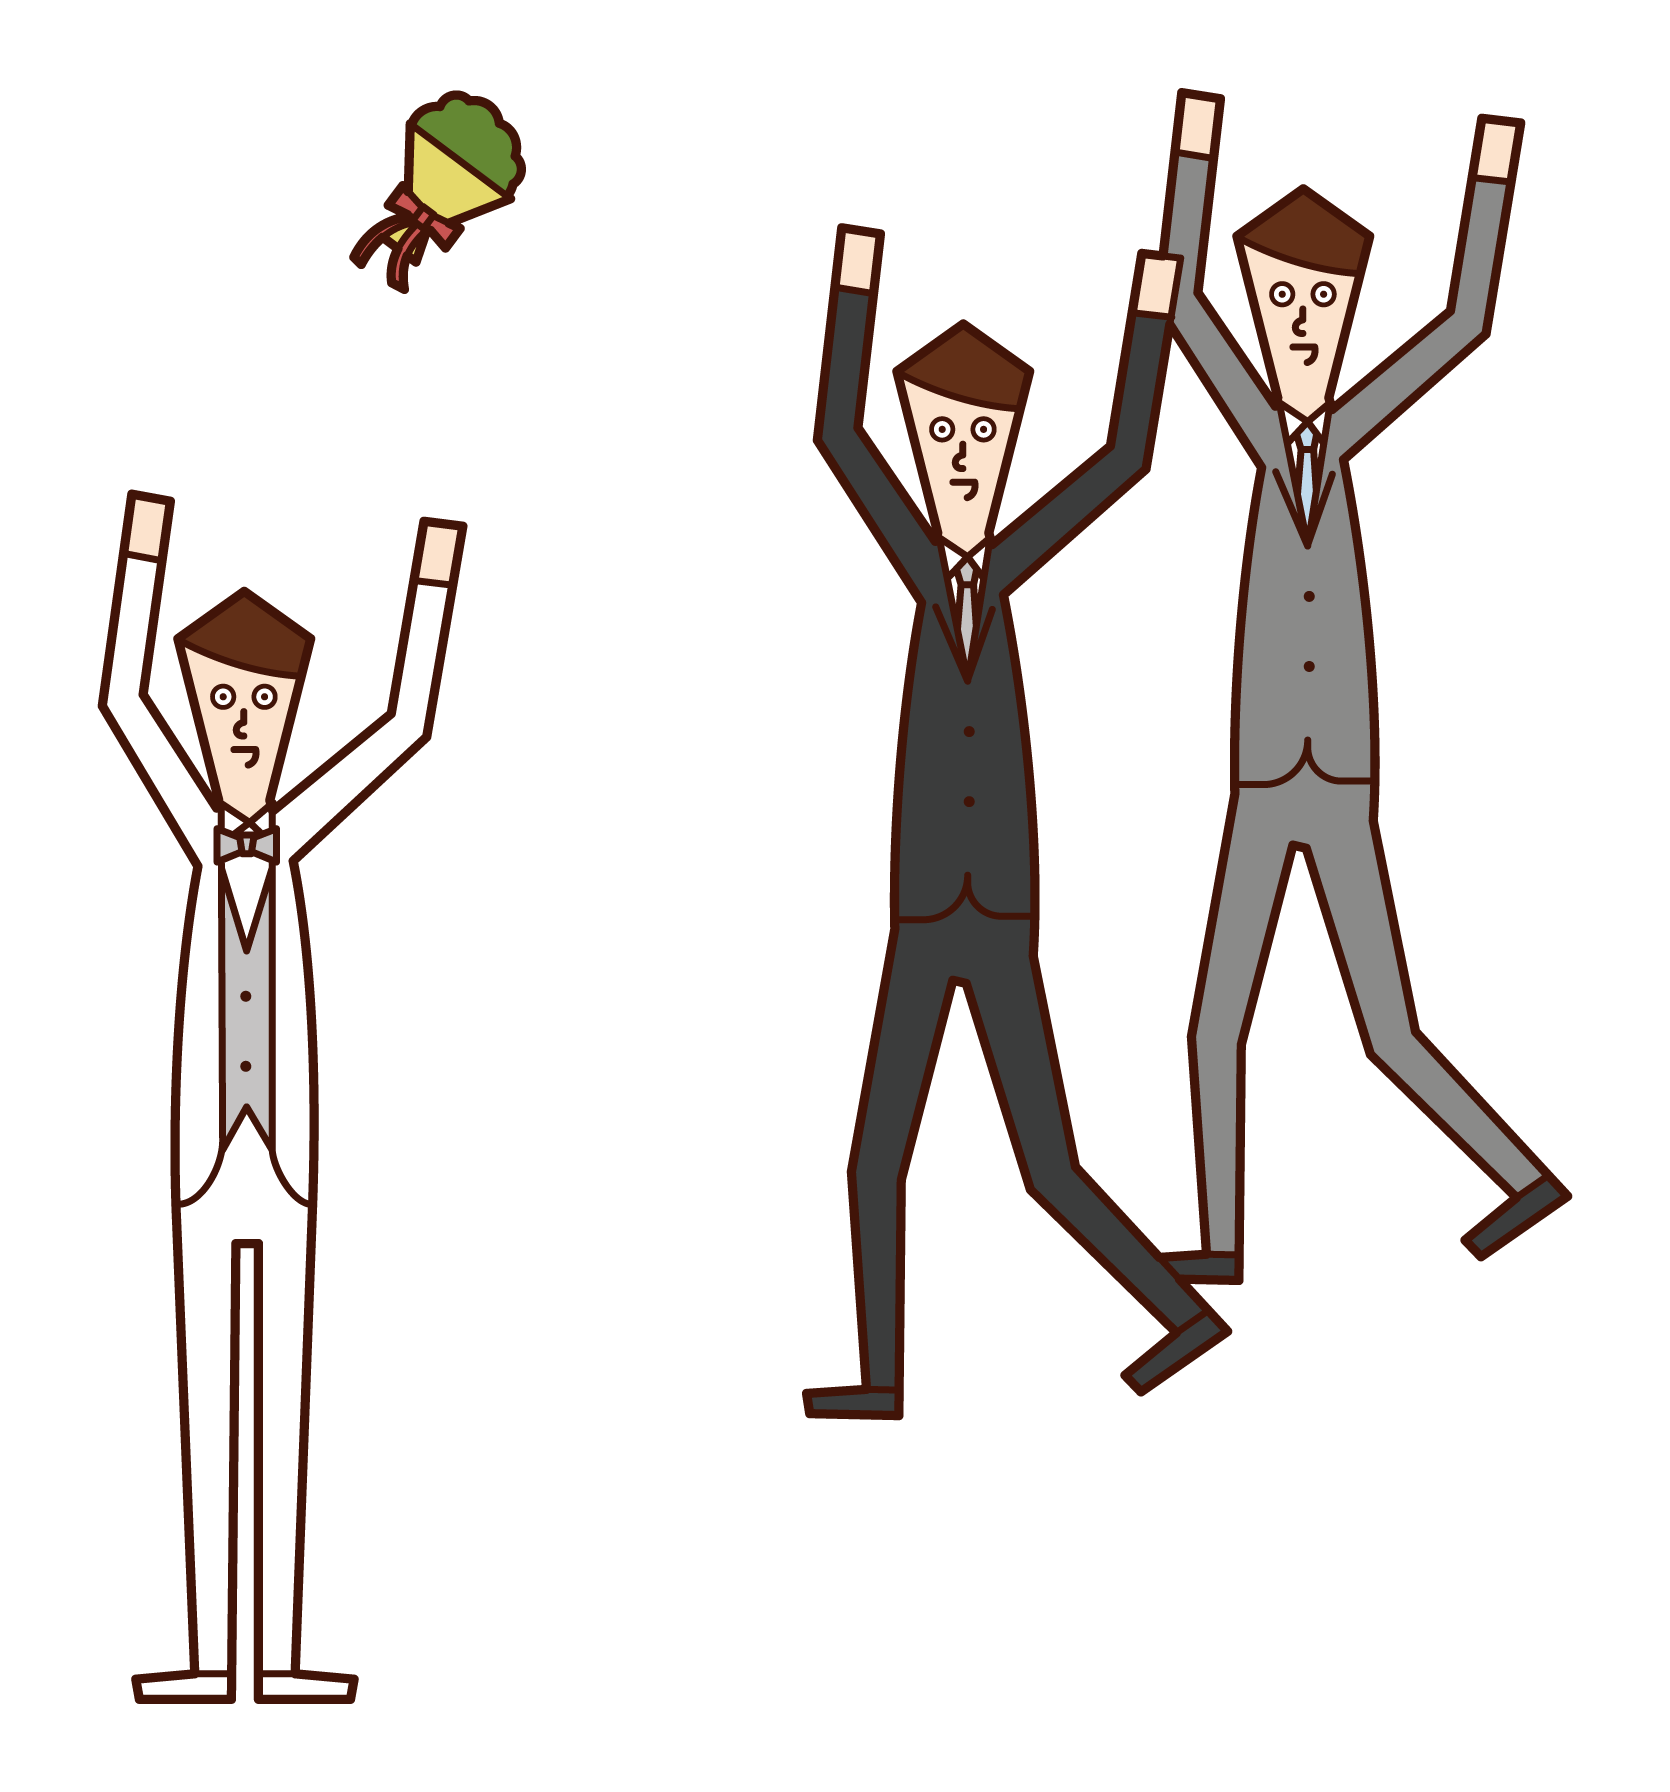 Illustration of a person (boy) who is a broccoli toss